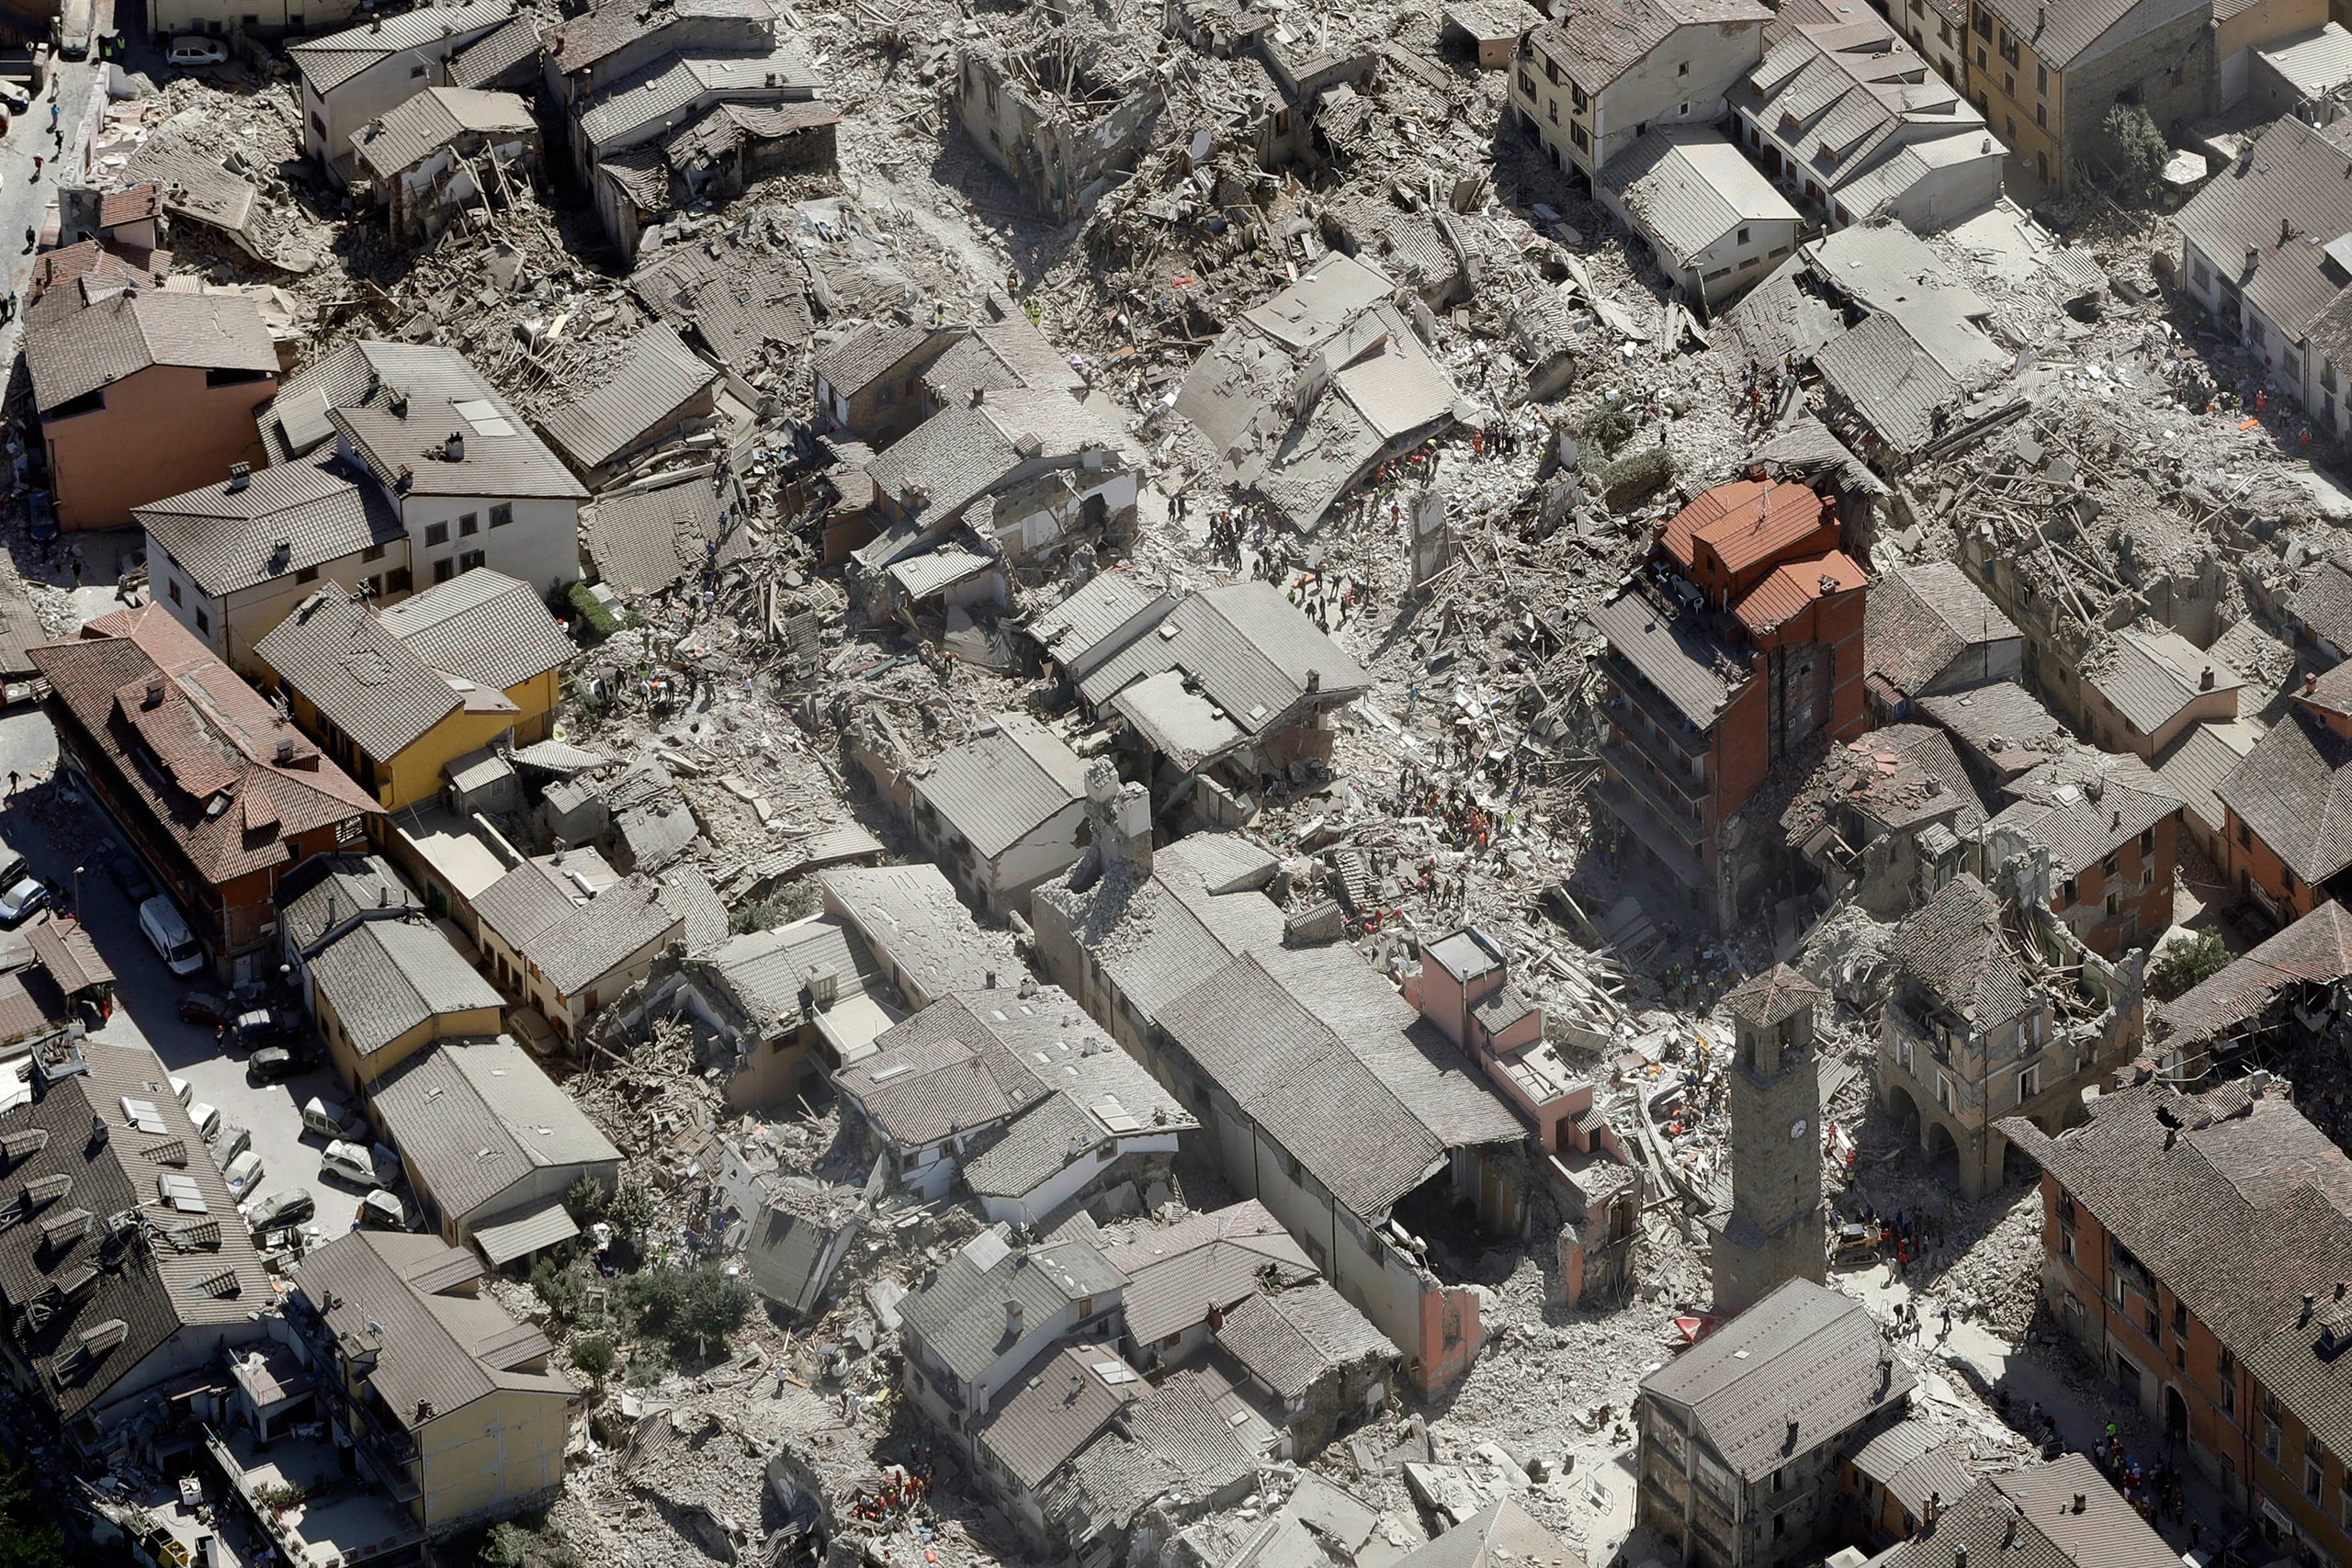 An overhead view of Amatrice after a powerful earthquake in central Italy on Aug. 24, 2016.